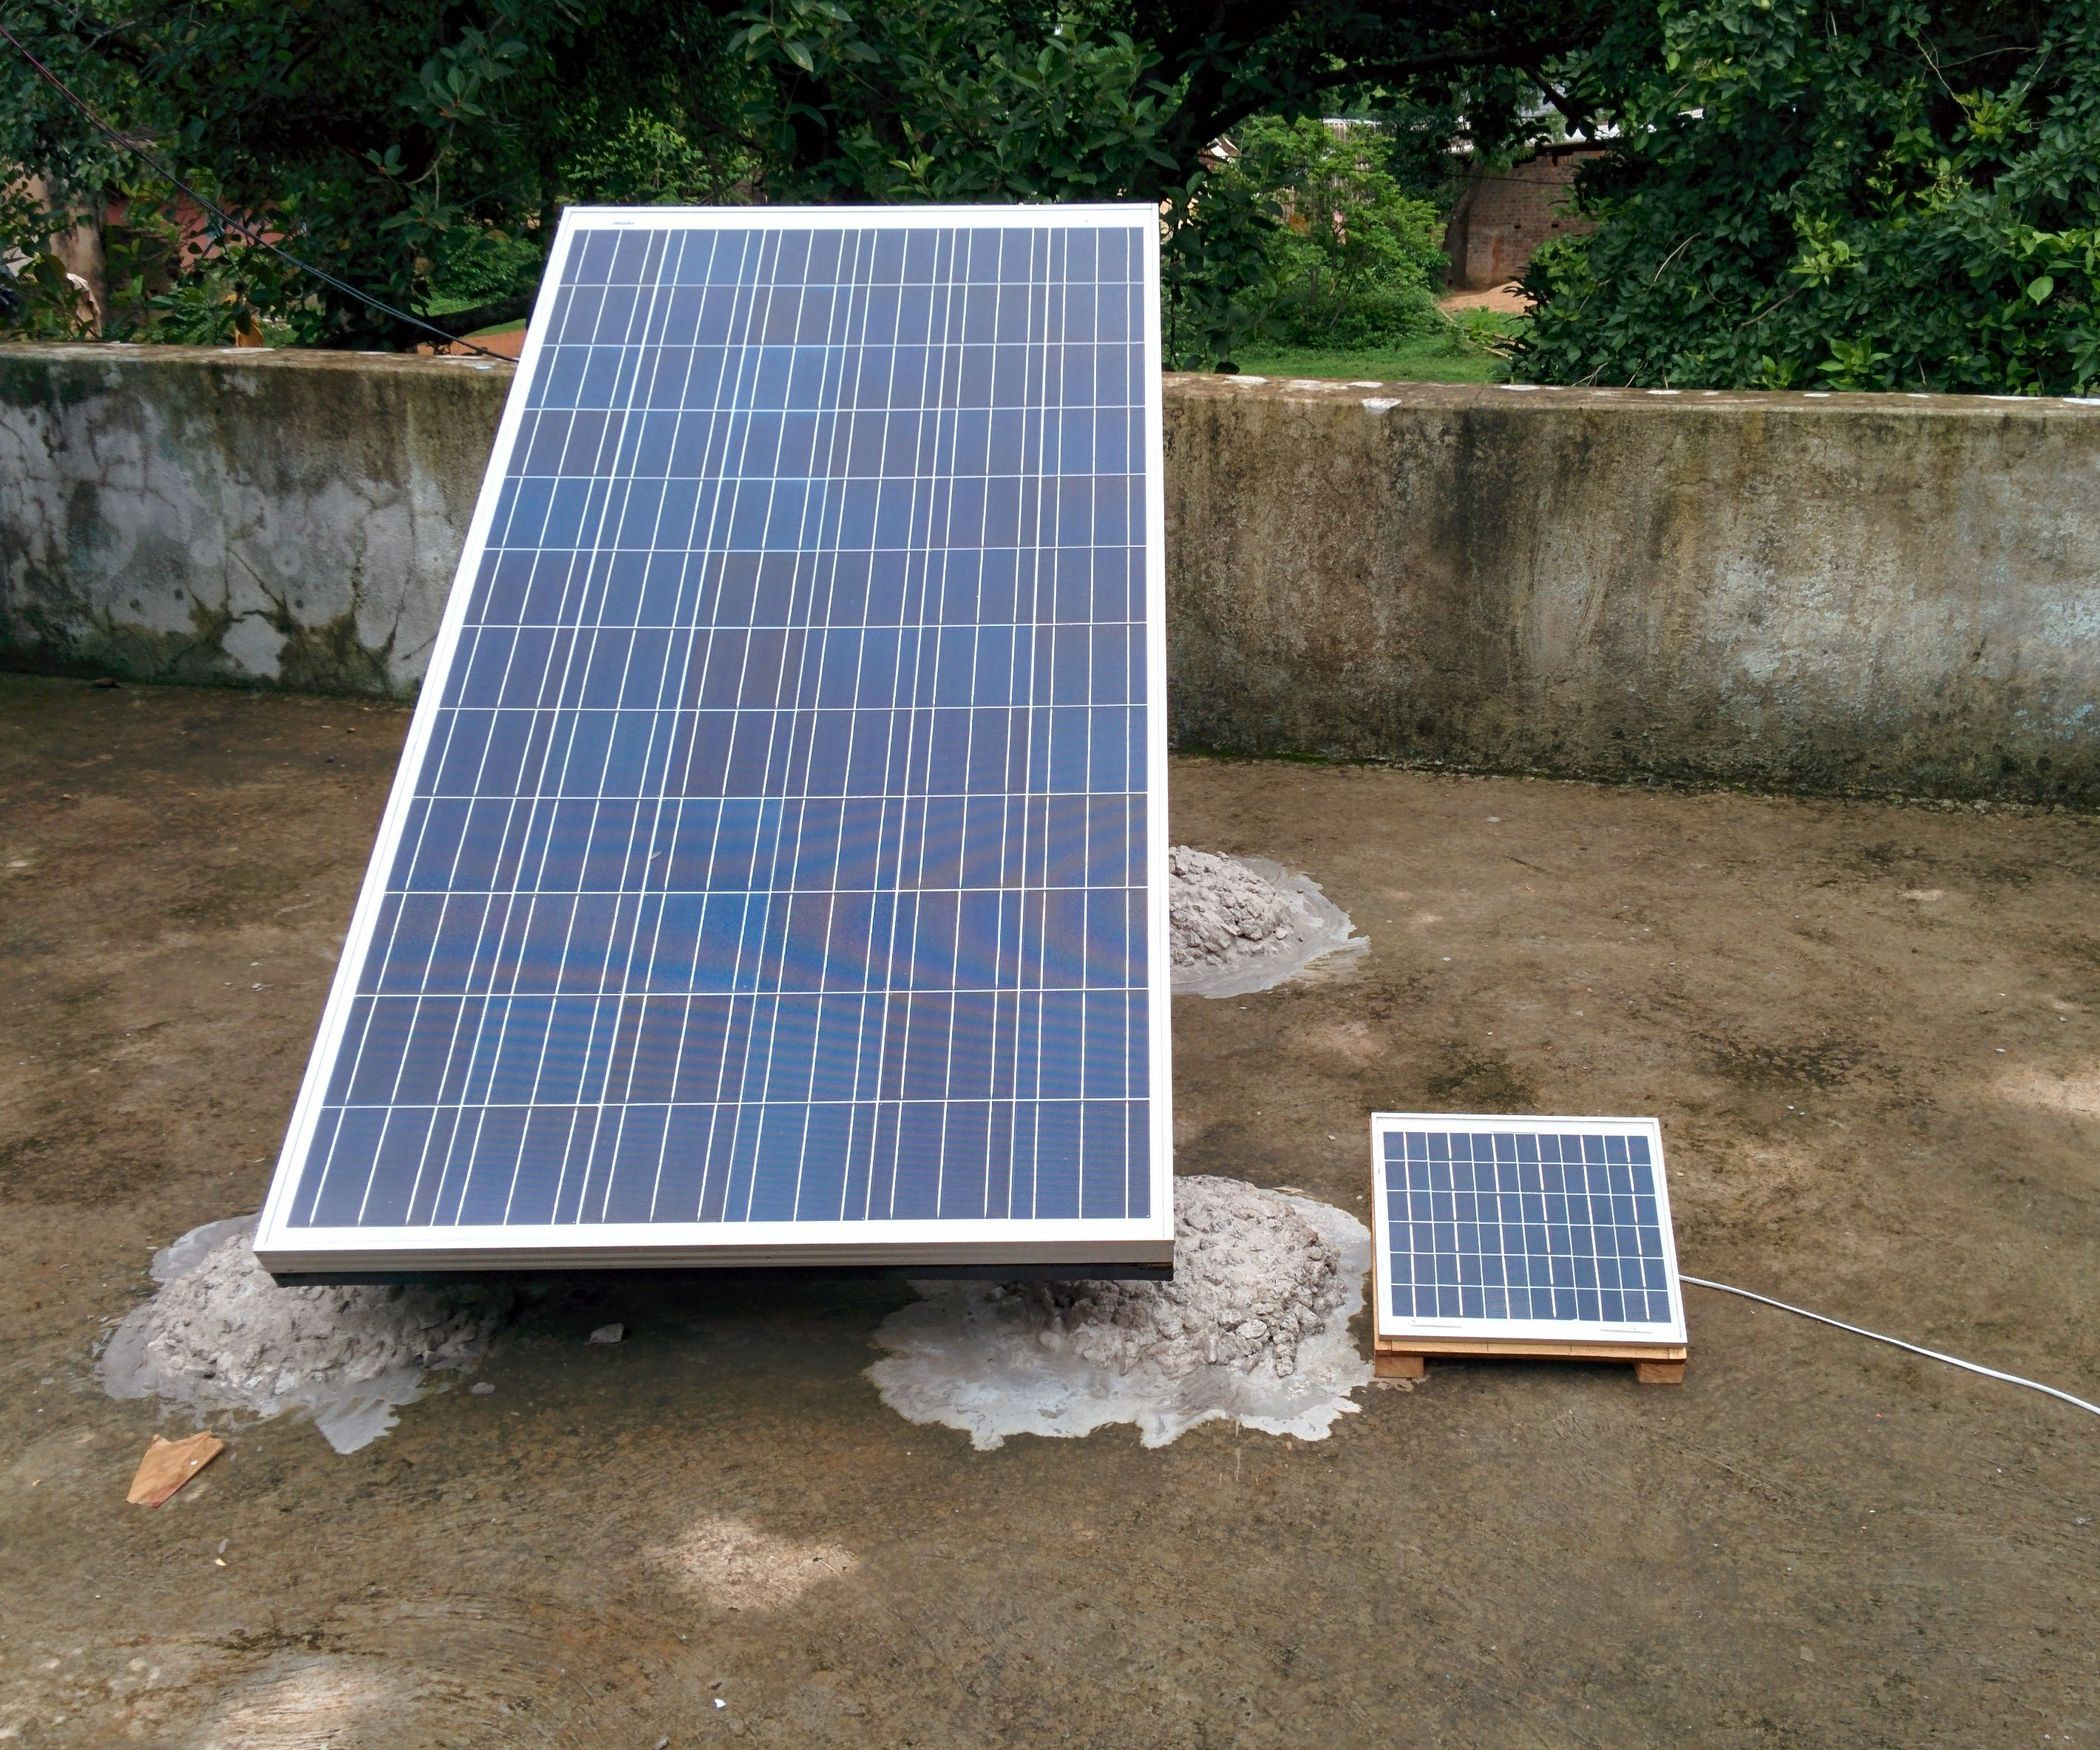 Best ideas about Solar Panels DIY . Save or Pin DIY OFF GRID SOLAR SYSTEM Now.